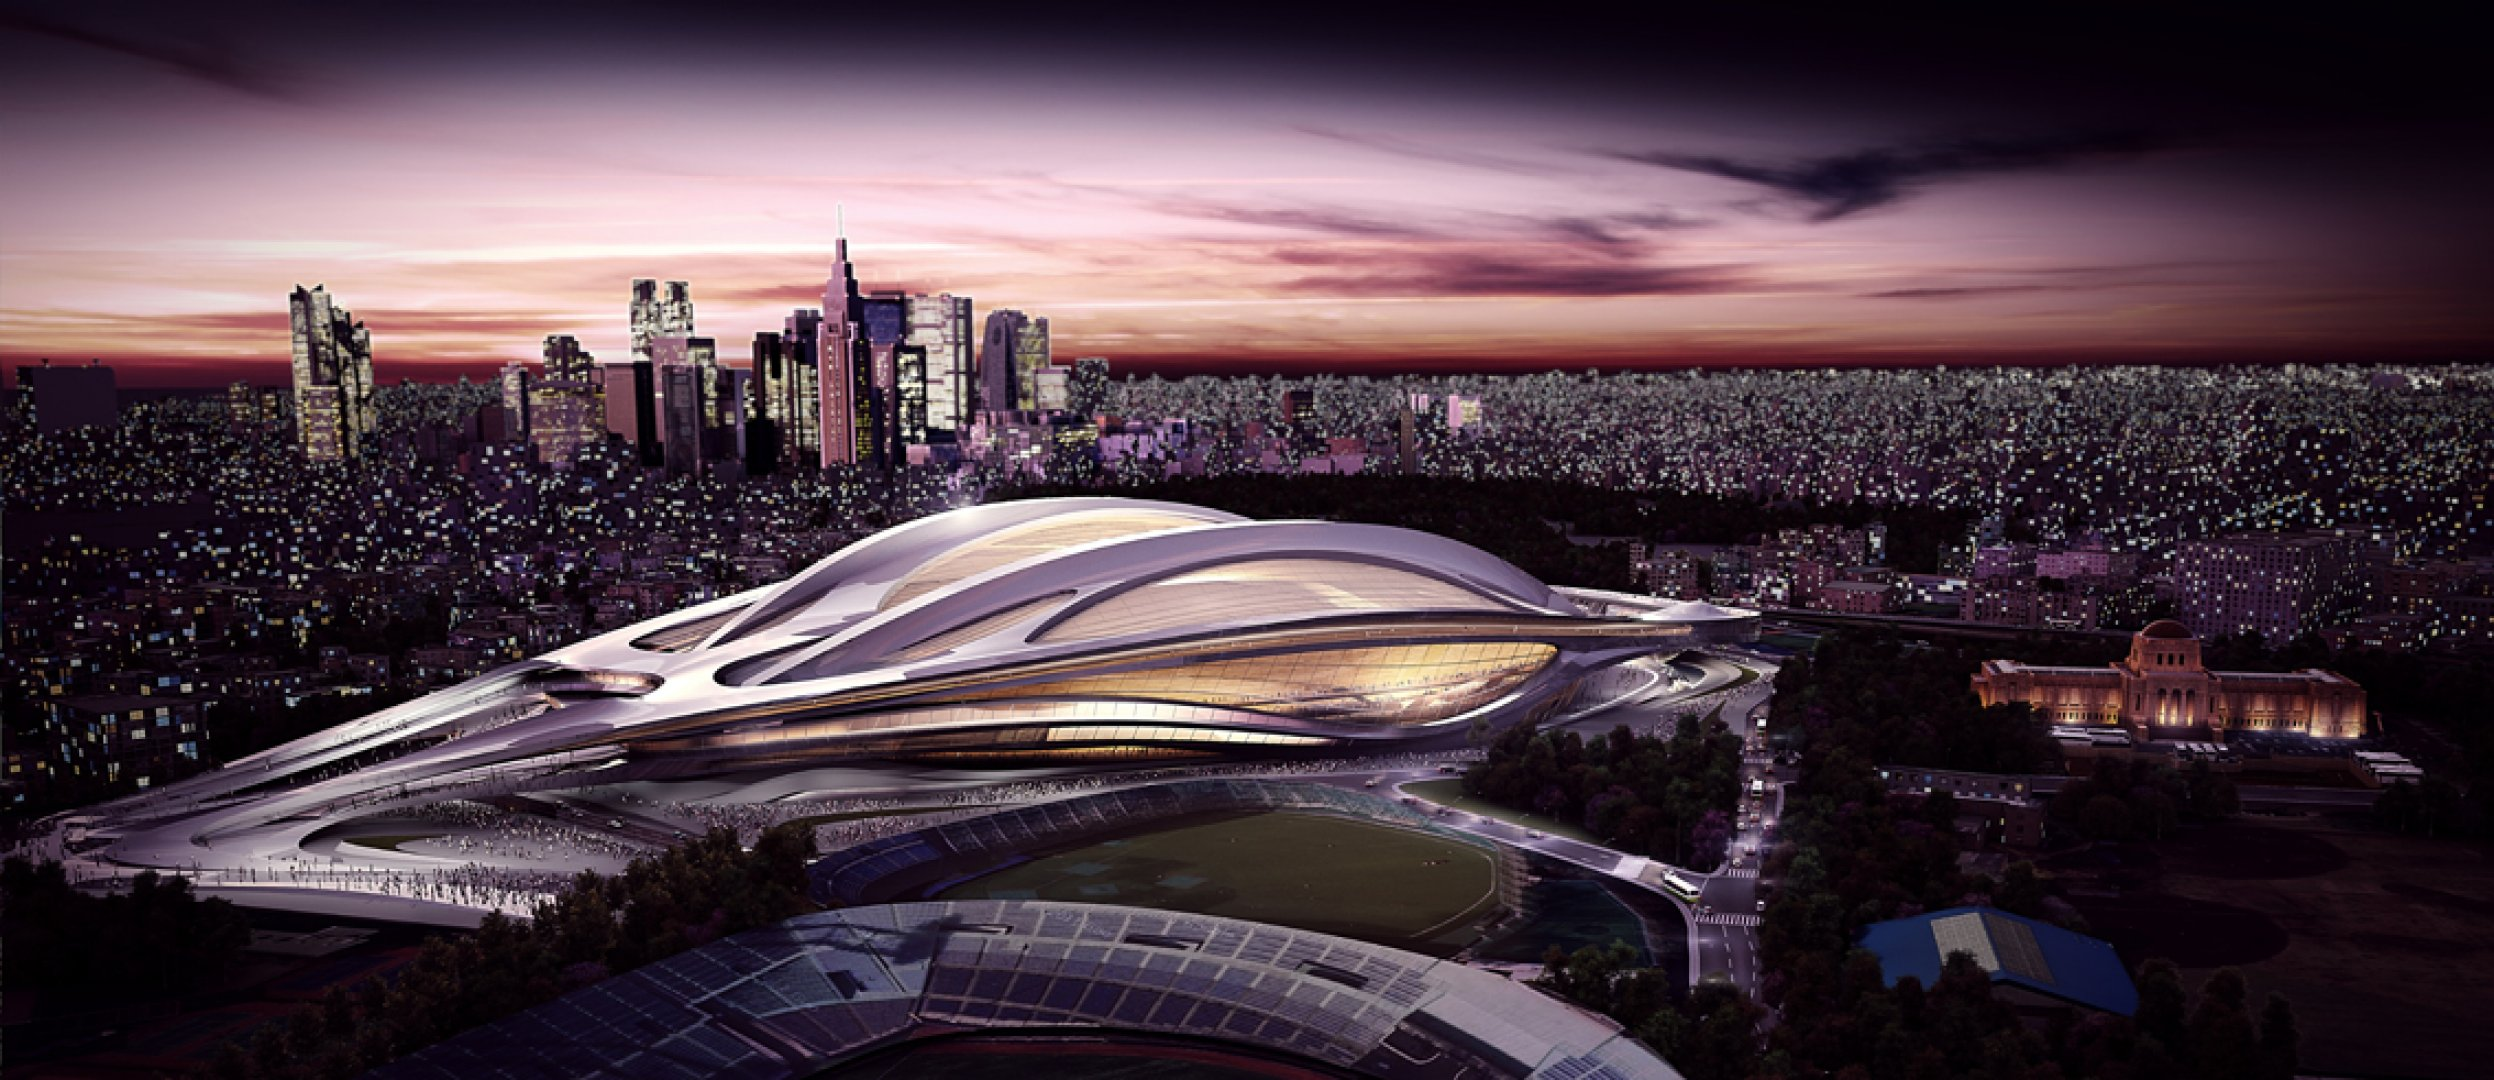 Proposed Stadium for Tokyo Olympic Games 2020 (Courtesy Zaha Hadid Architects